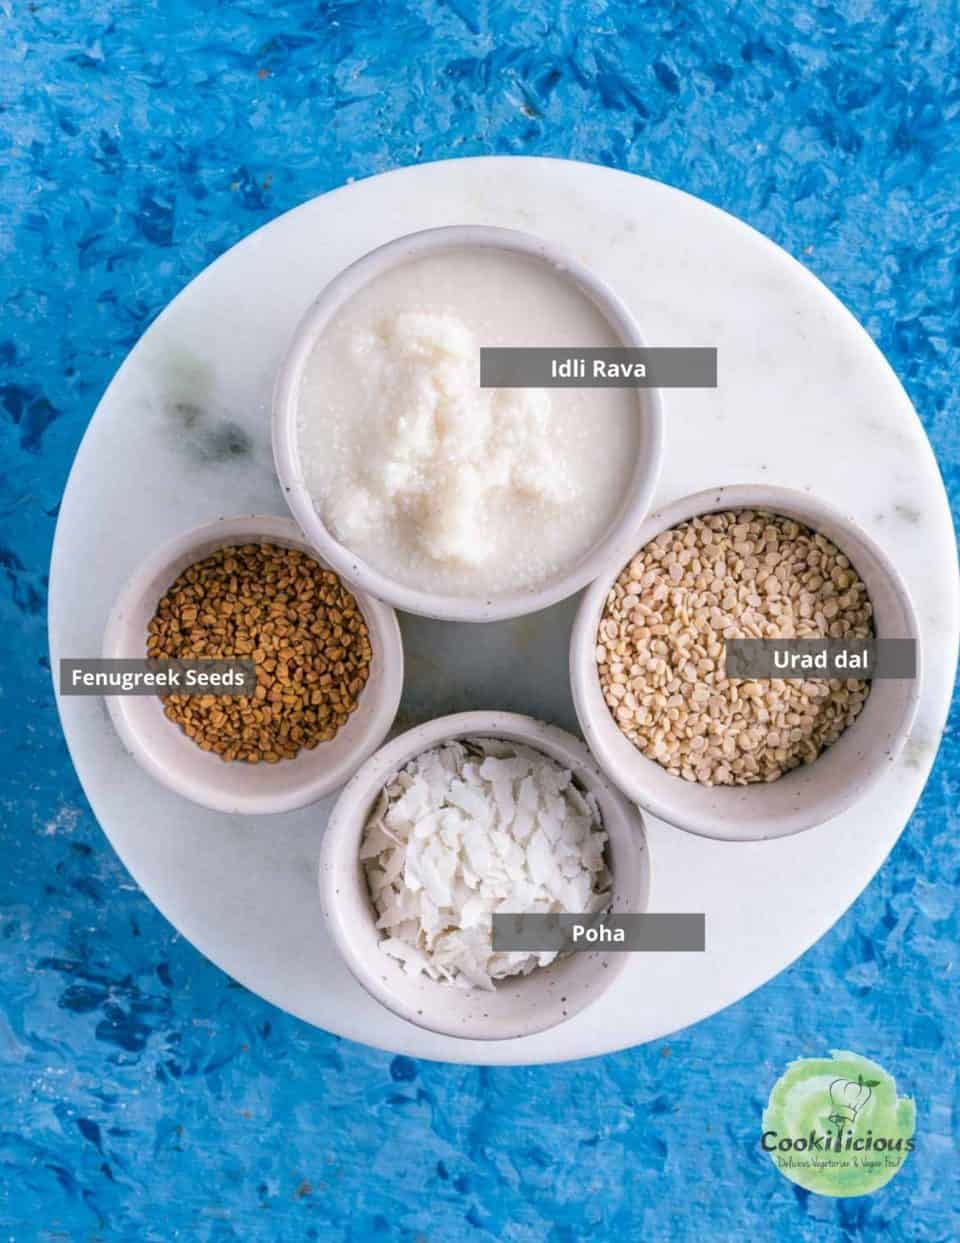 all the ingredients needed to make idli batter placed on a tray with labels on them